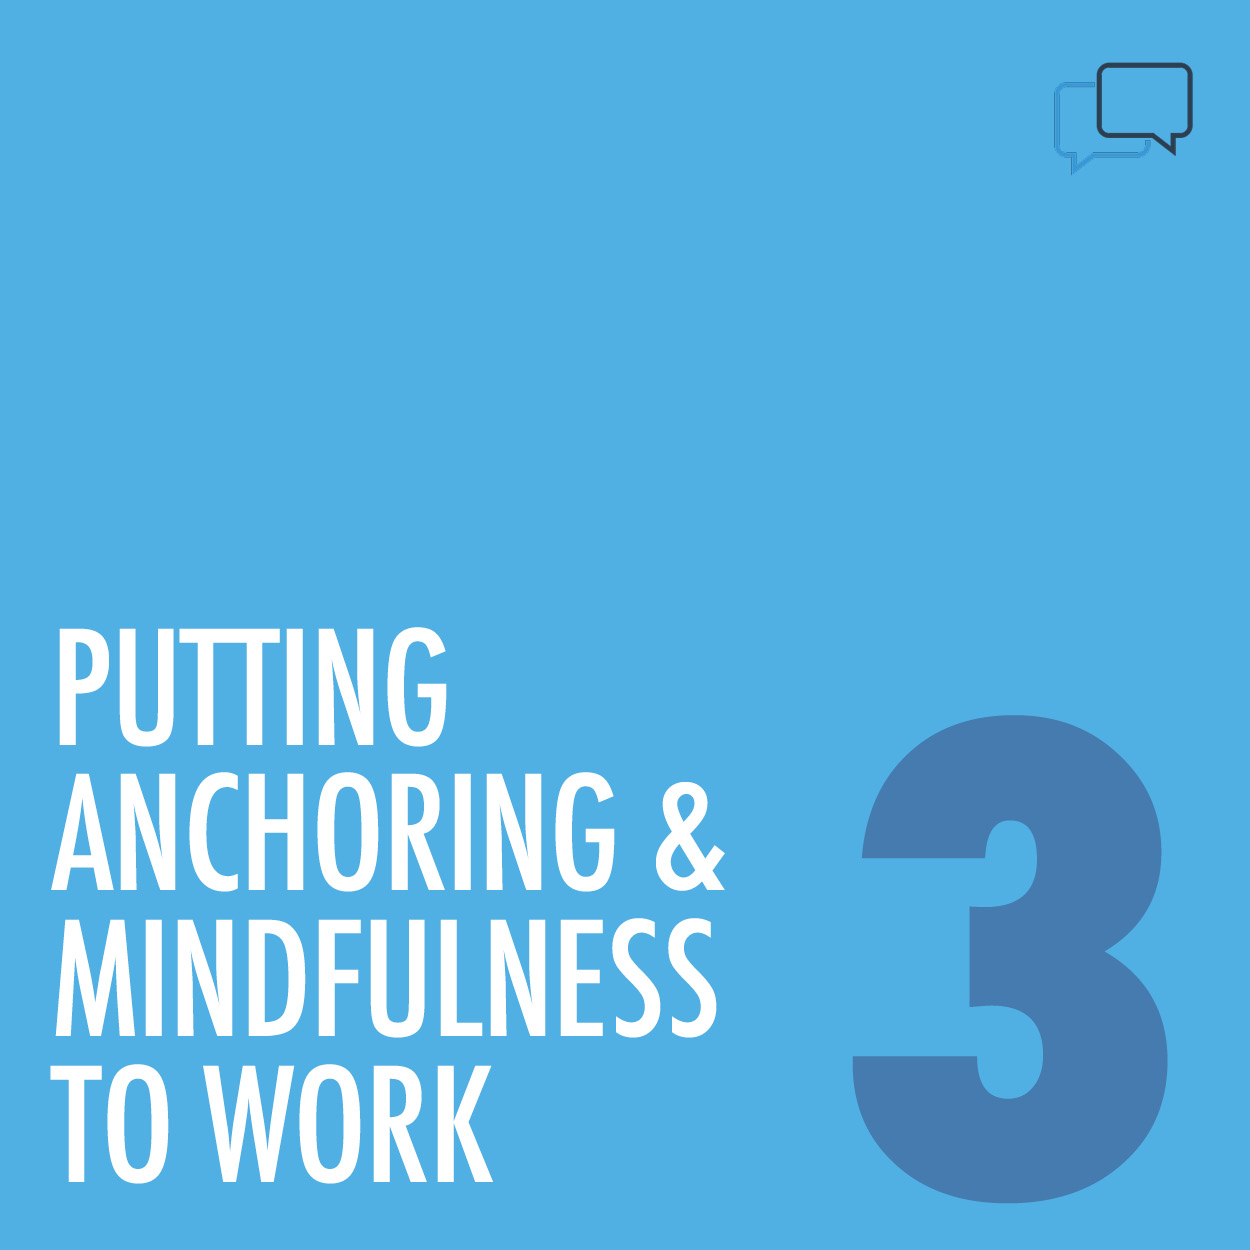 Putting anchoring and mindfulness to work